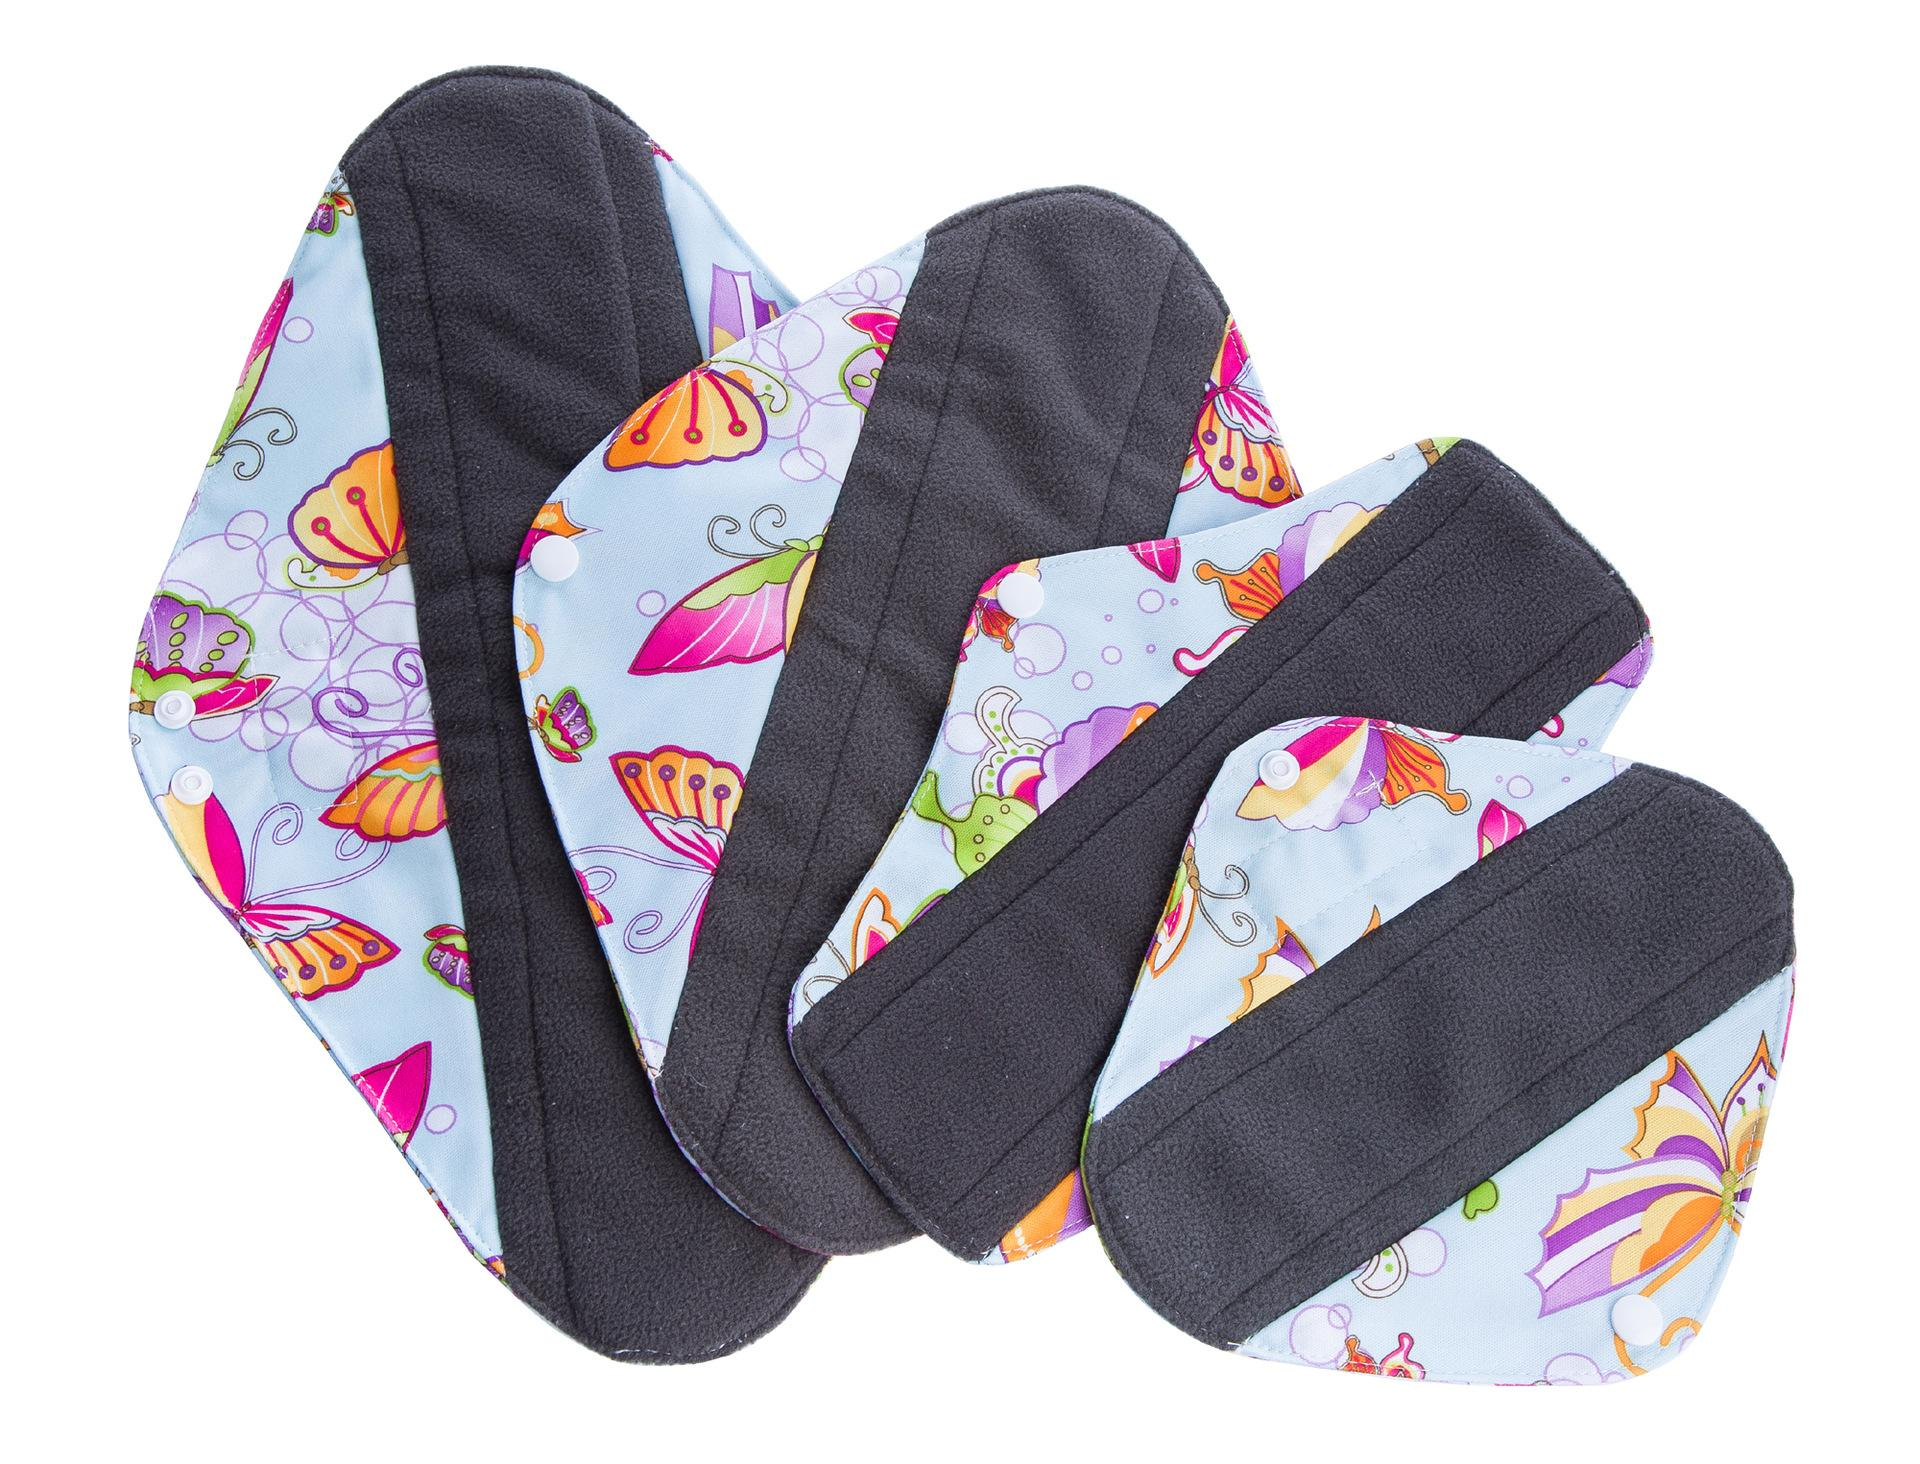 Bamboo Reusable Sanitary Pads - Cloth Sanitary Pads | Bladder Support &  Incontinence |Menstrual Pads -4 Size